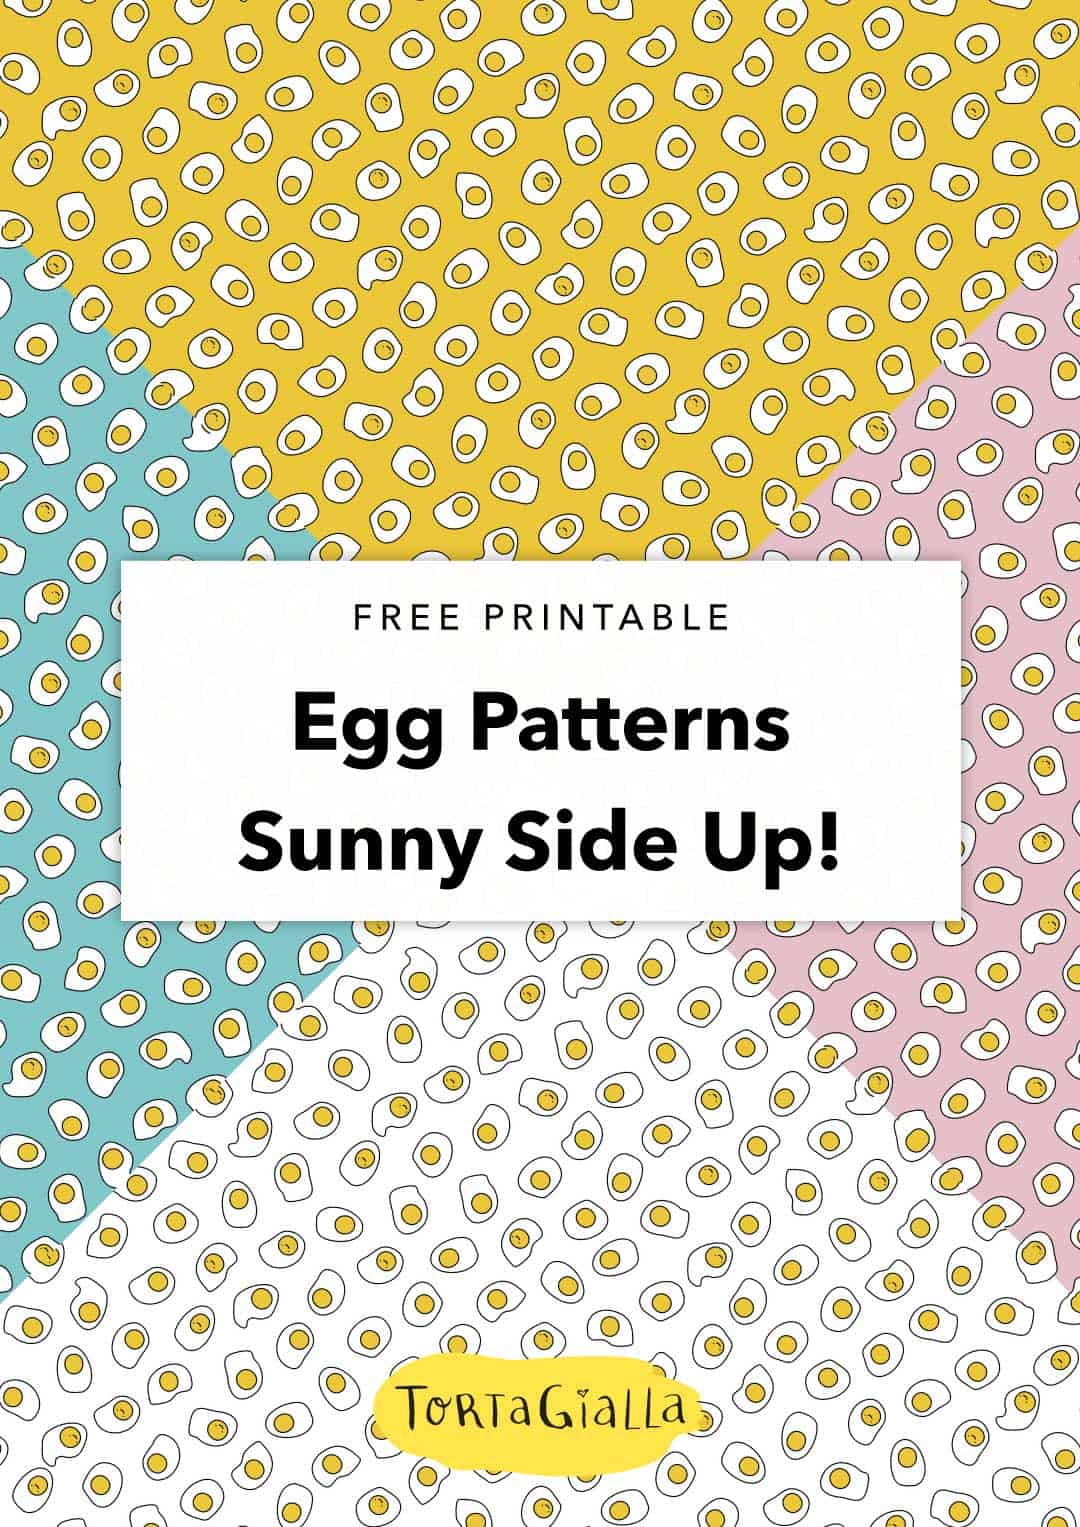 Free Printable Egg Pattern Paper | Sunny Side Up